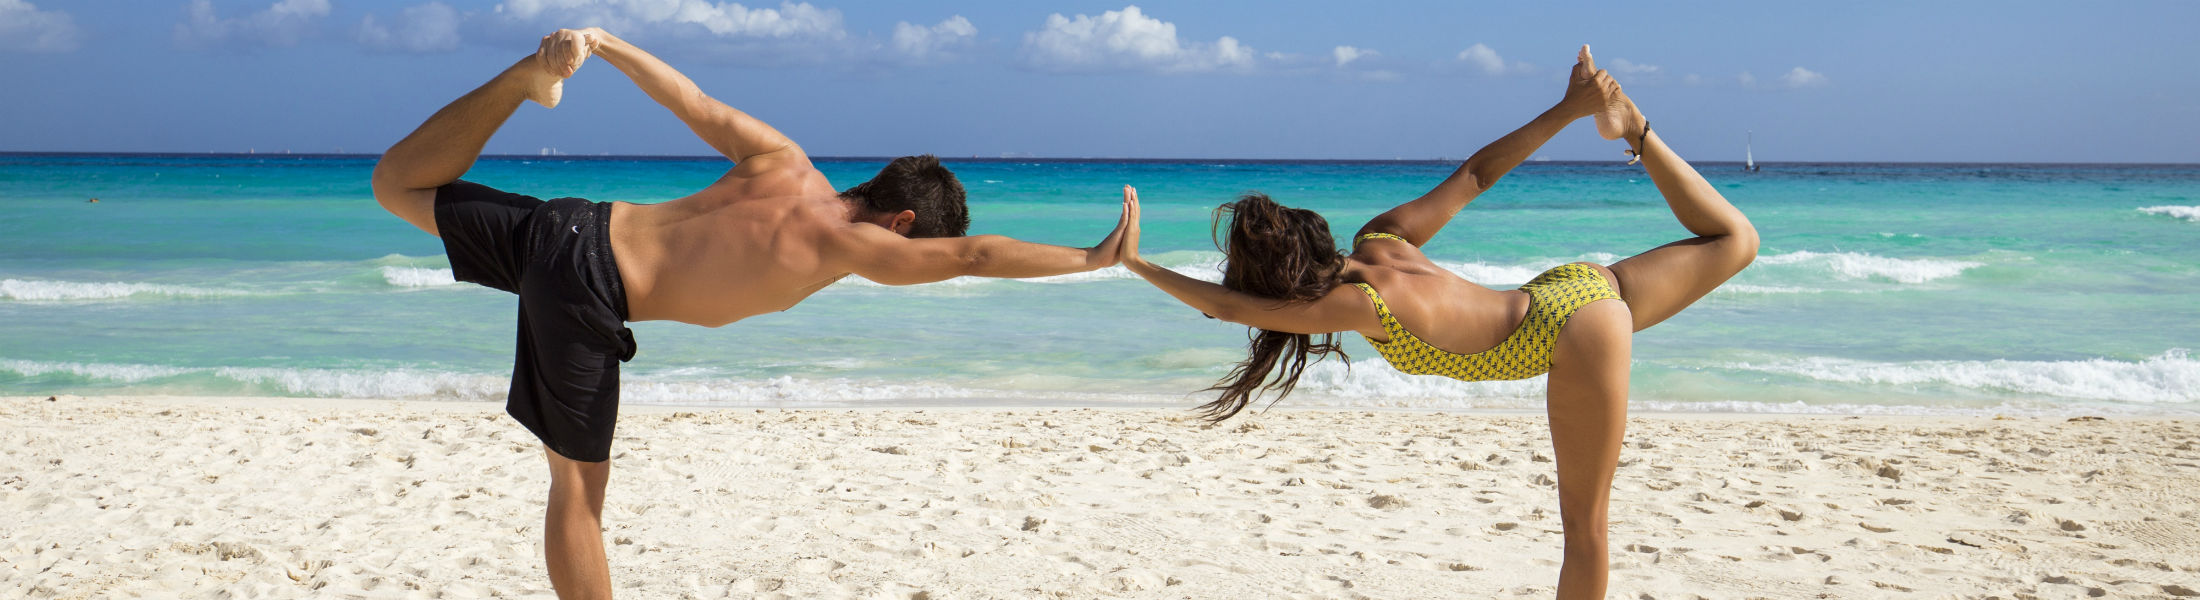 Couple doing yoga at the beach in their swimwear